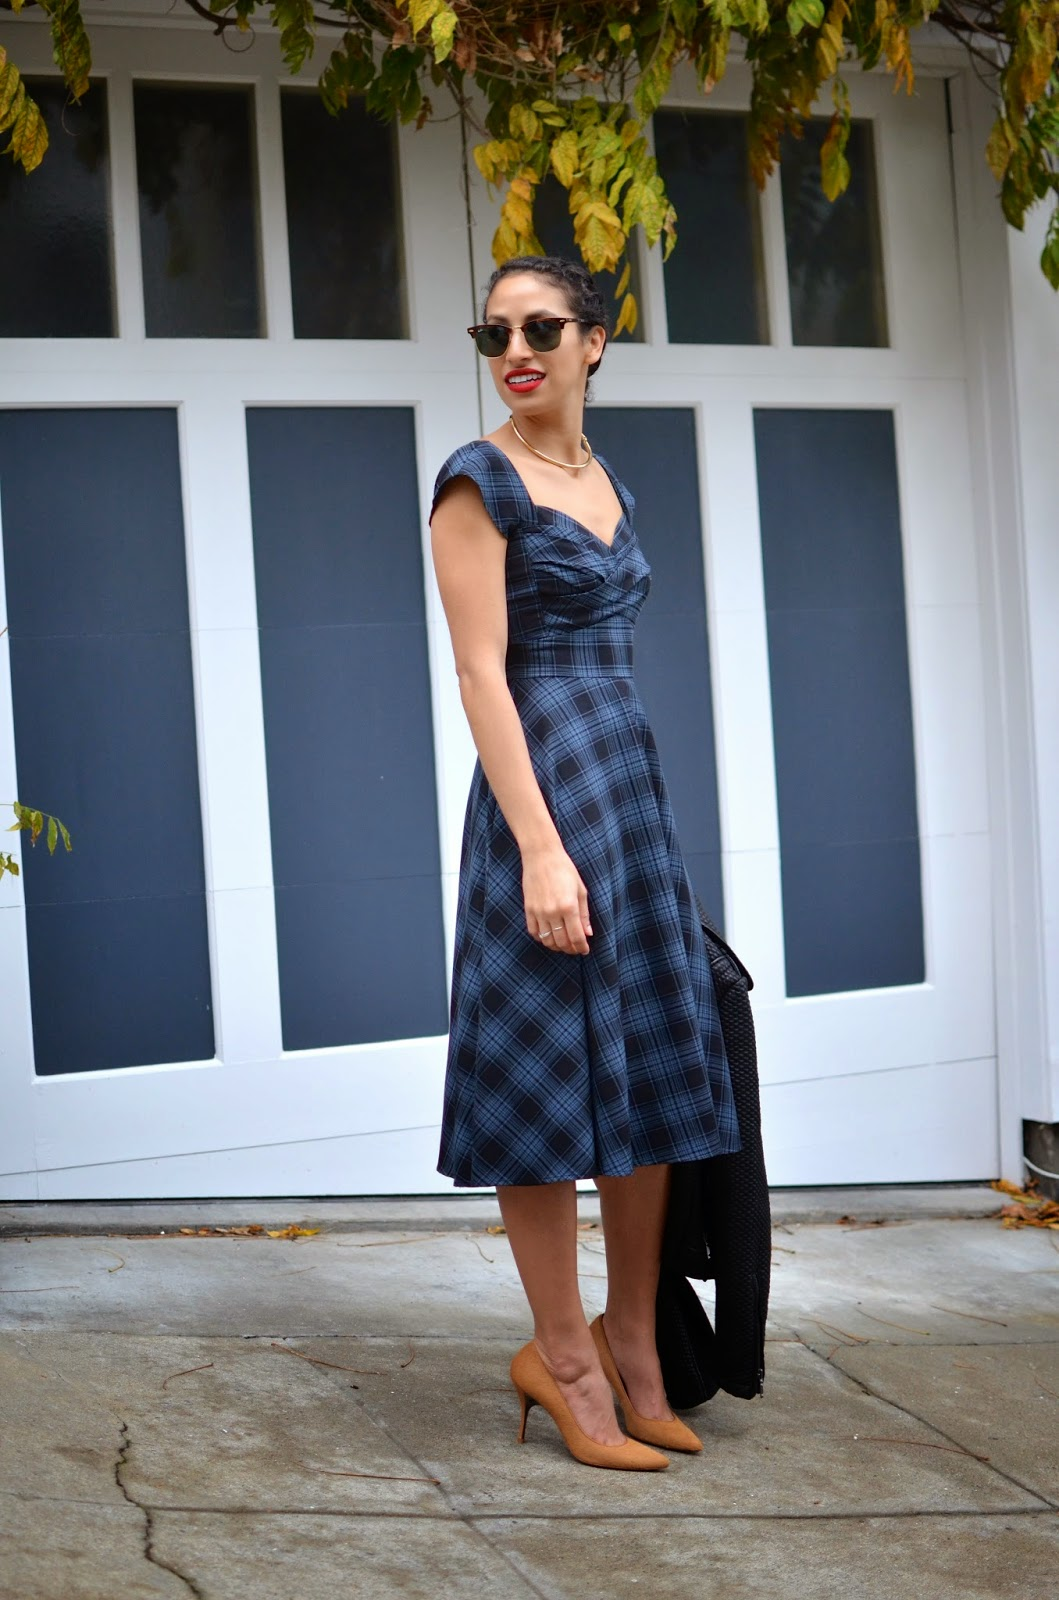 SF style, Stop Staring!, Think PR, SF, holiday plaid, BCBGMaxAzria, Bloomingdales, J. Crew, Donald Pliner, Stila Beso 10, Heidi braids, feminine vibe, ladylike dress, vintage silhouette